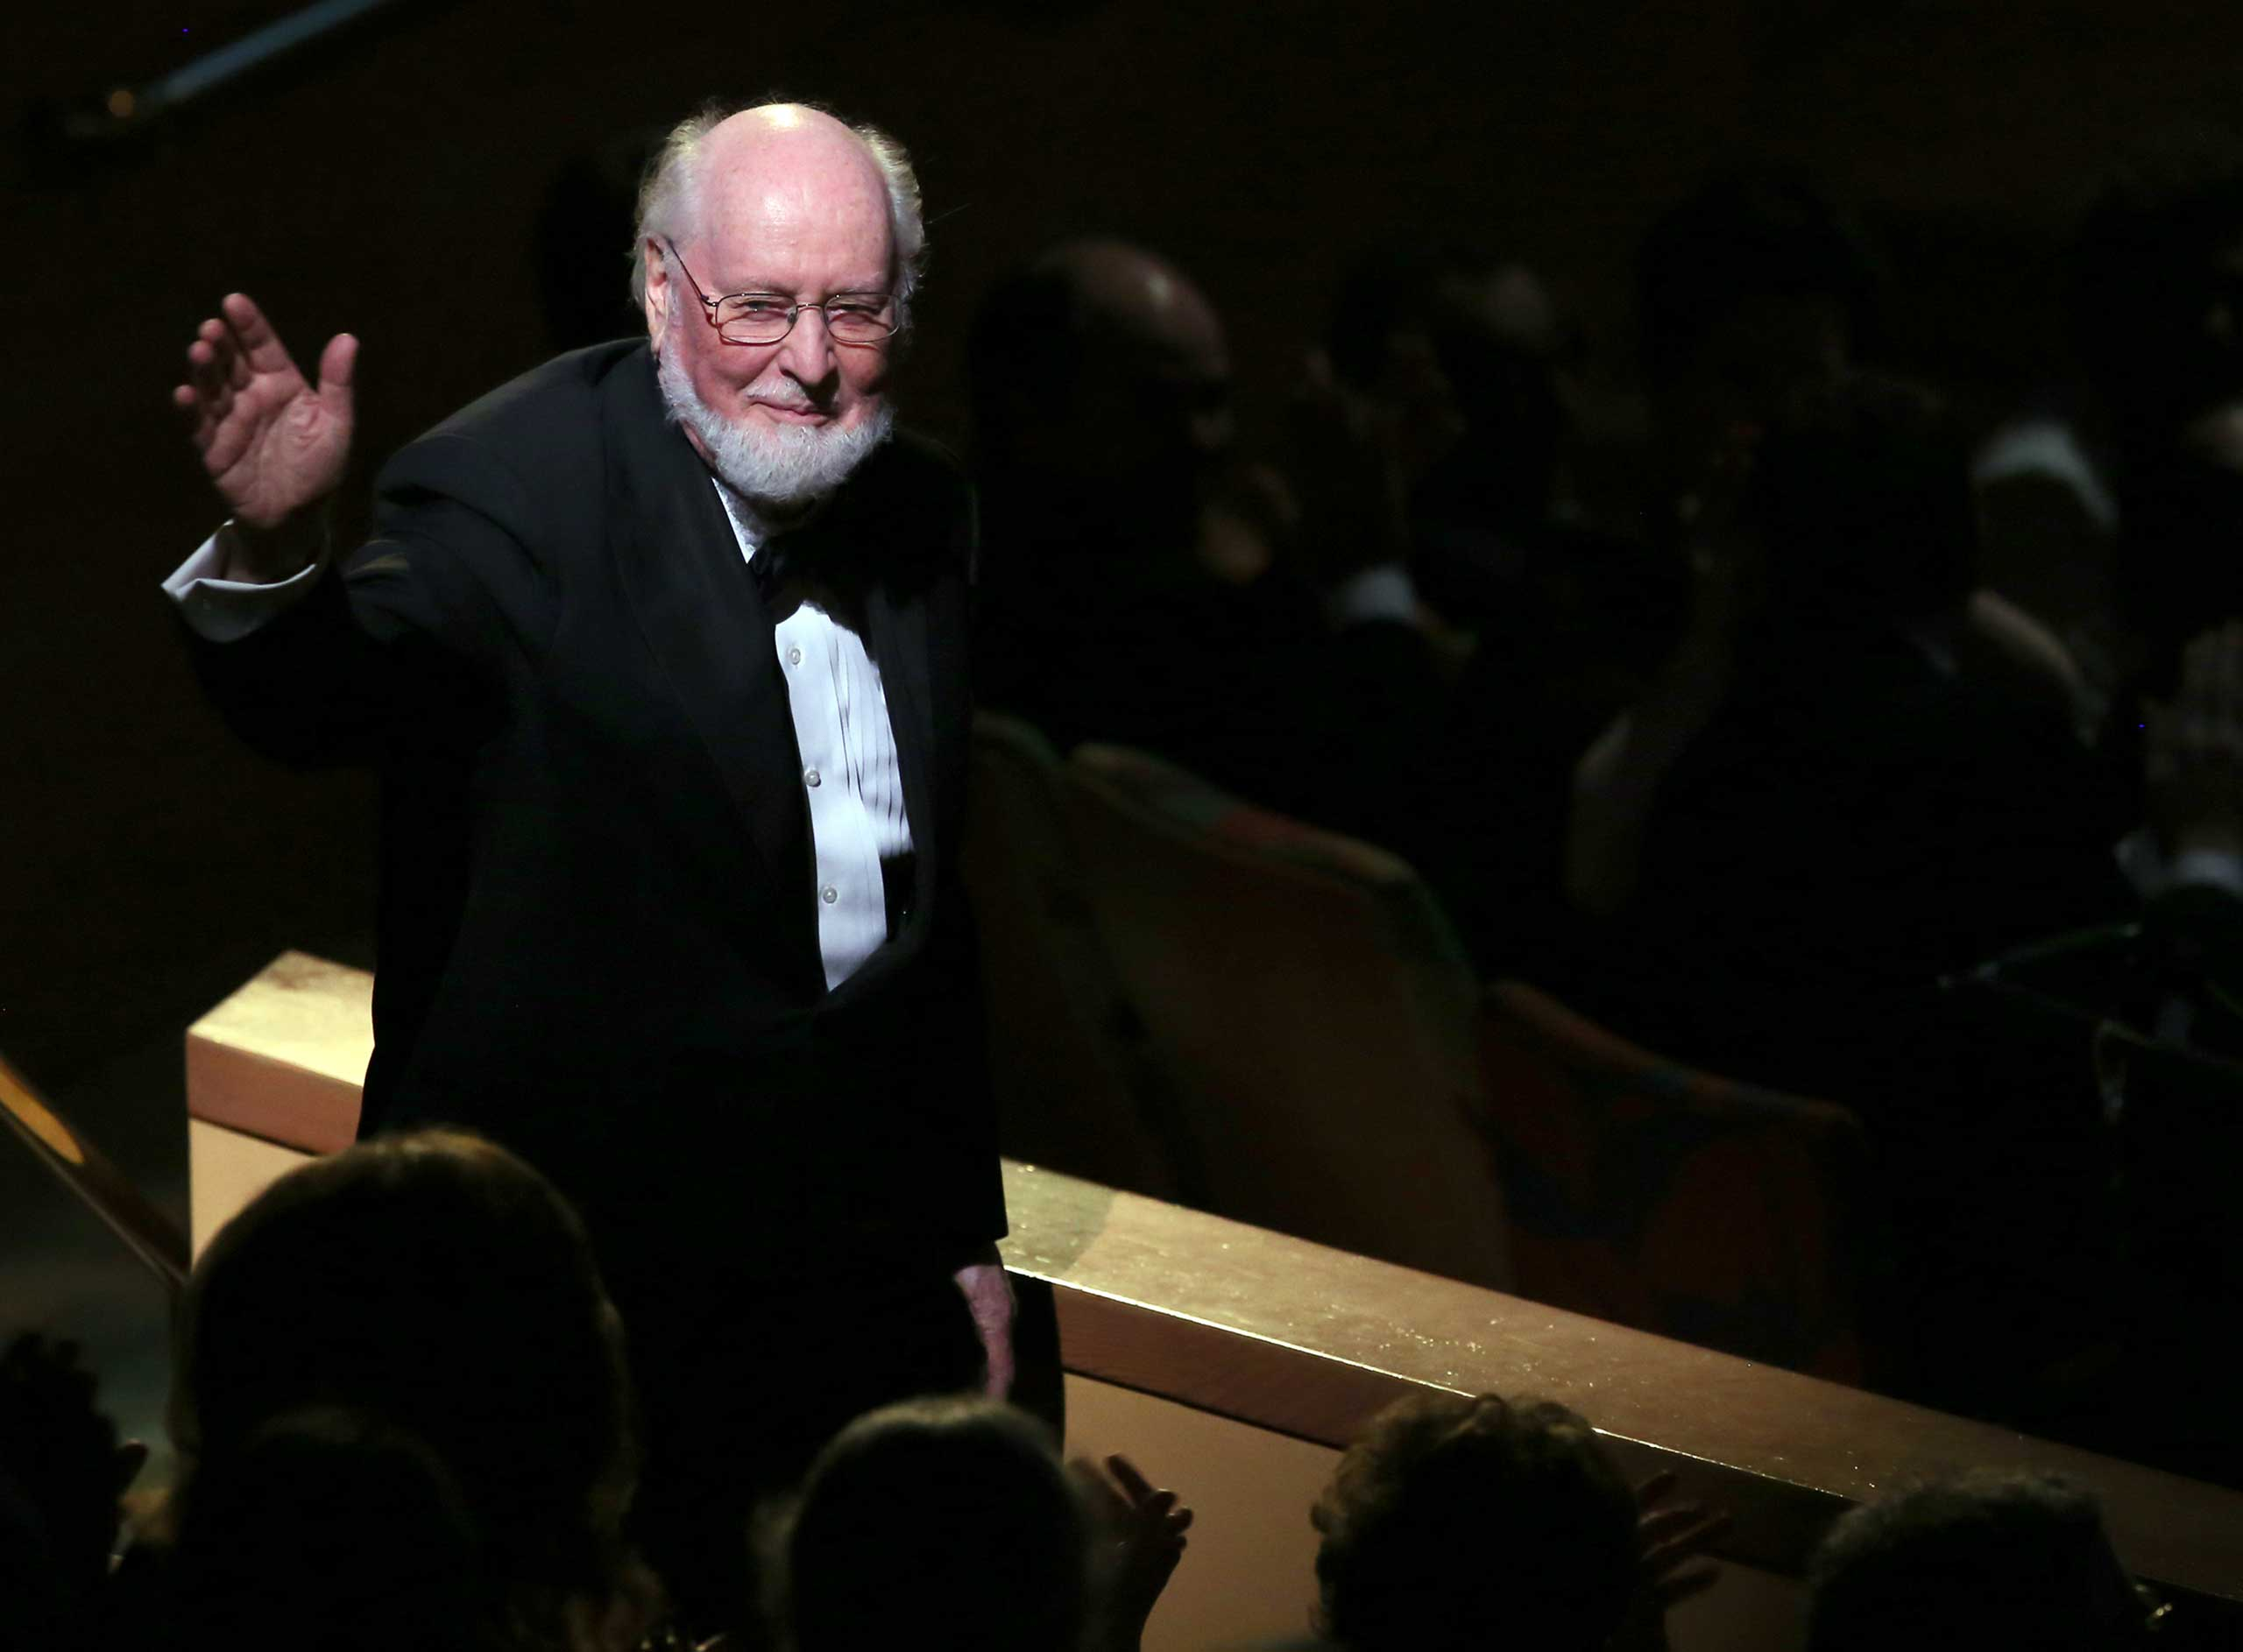 Composer John Williams waves to the audience at Los Angeles Philharmonic's Walt Disney Concert Hall Opening Night Gala  in Los Angeles, on Sept. 30, 2014.